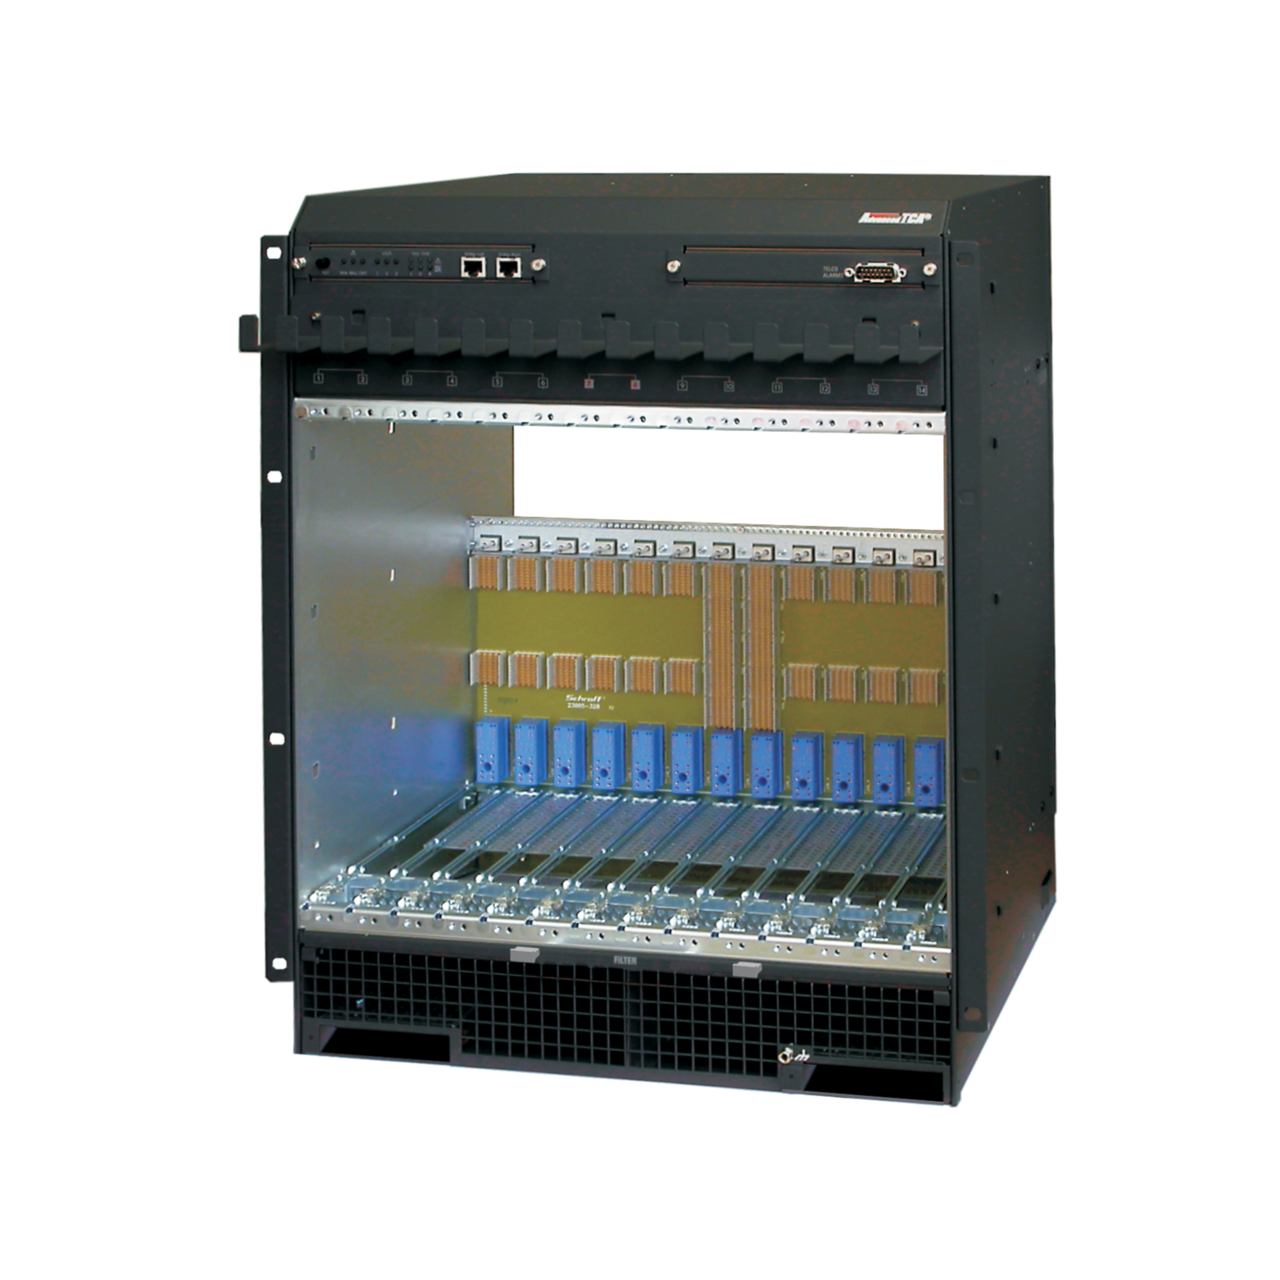 Image for AdvancedTCA 300/40 series, 13 U, 14 slot, DC from Schroff - Asia Pacific